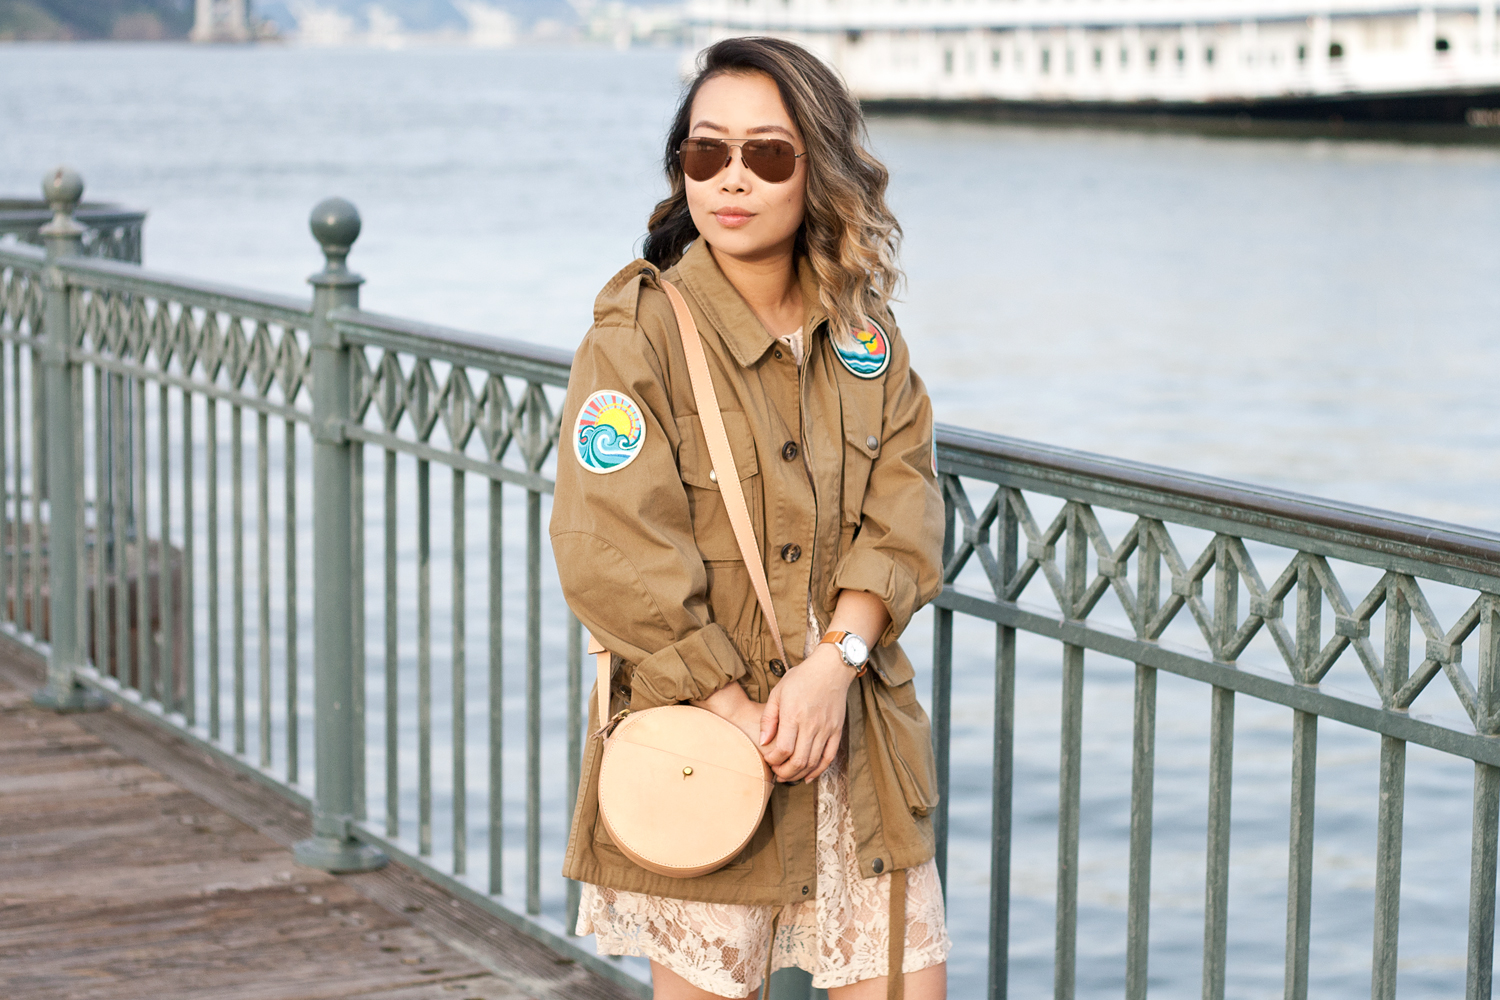 03valentino-patch-jacket-madewell-sf-sanfrancisco-style-fashion